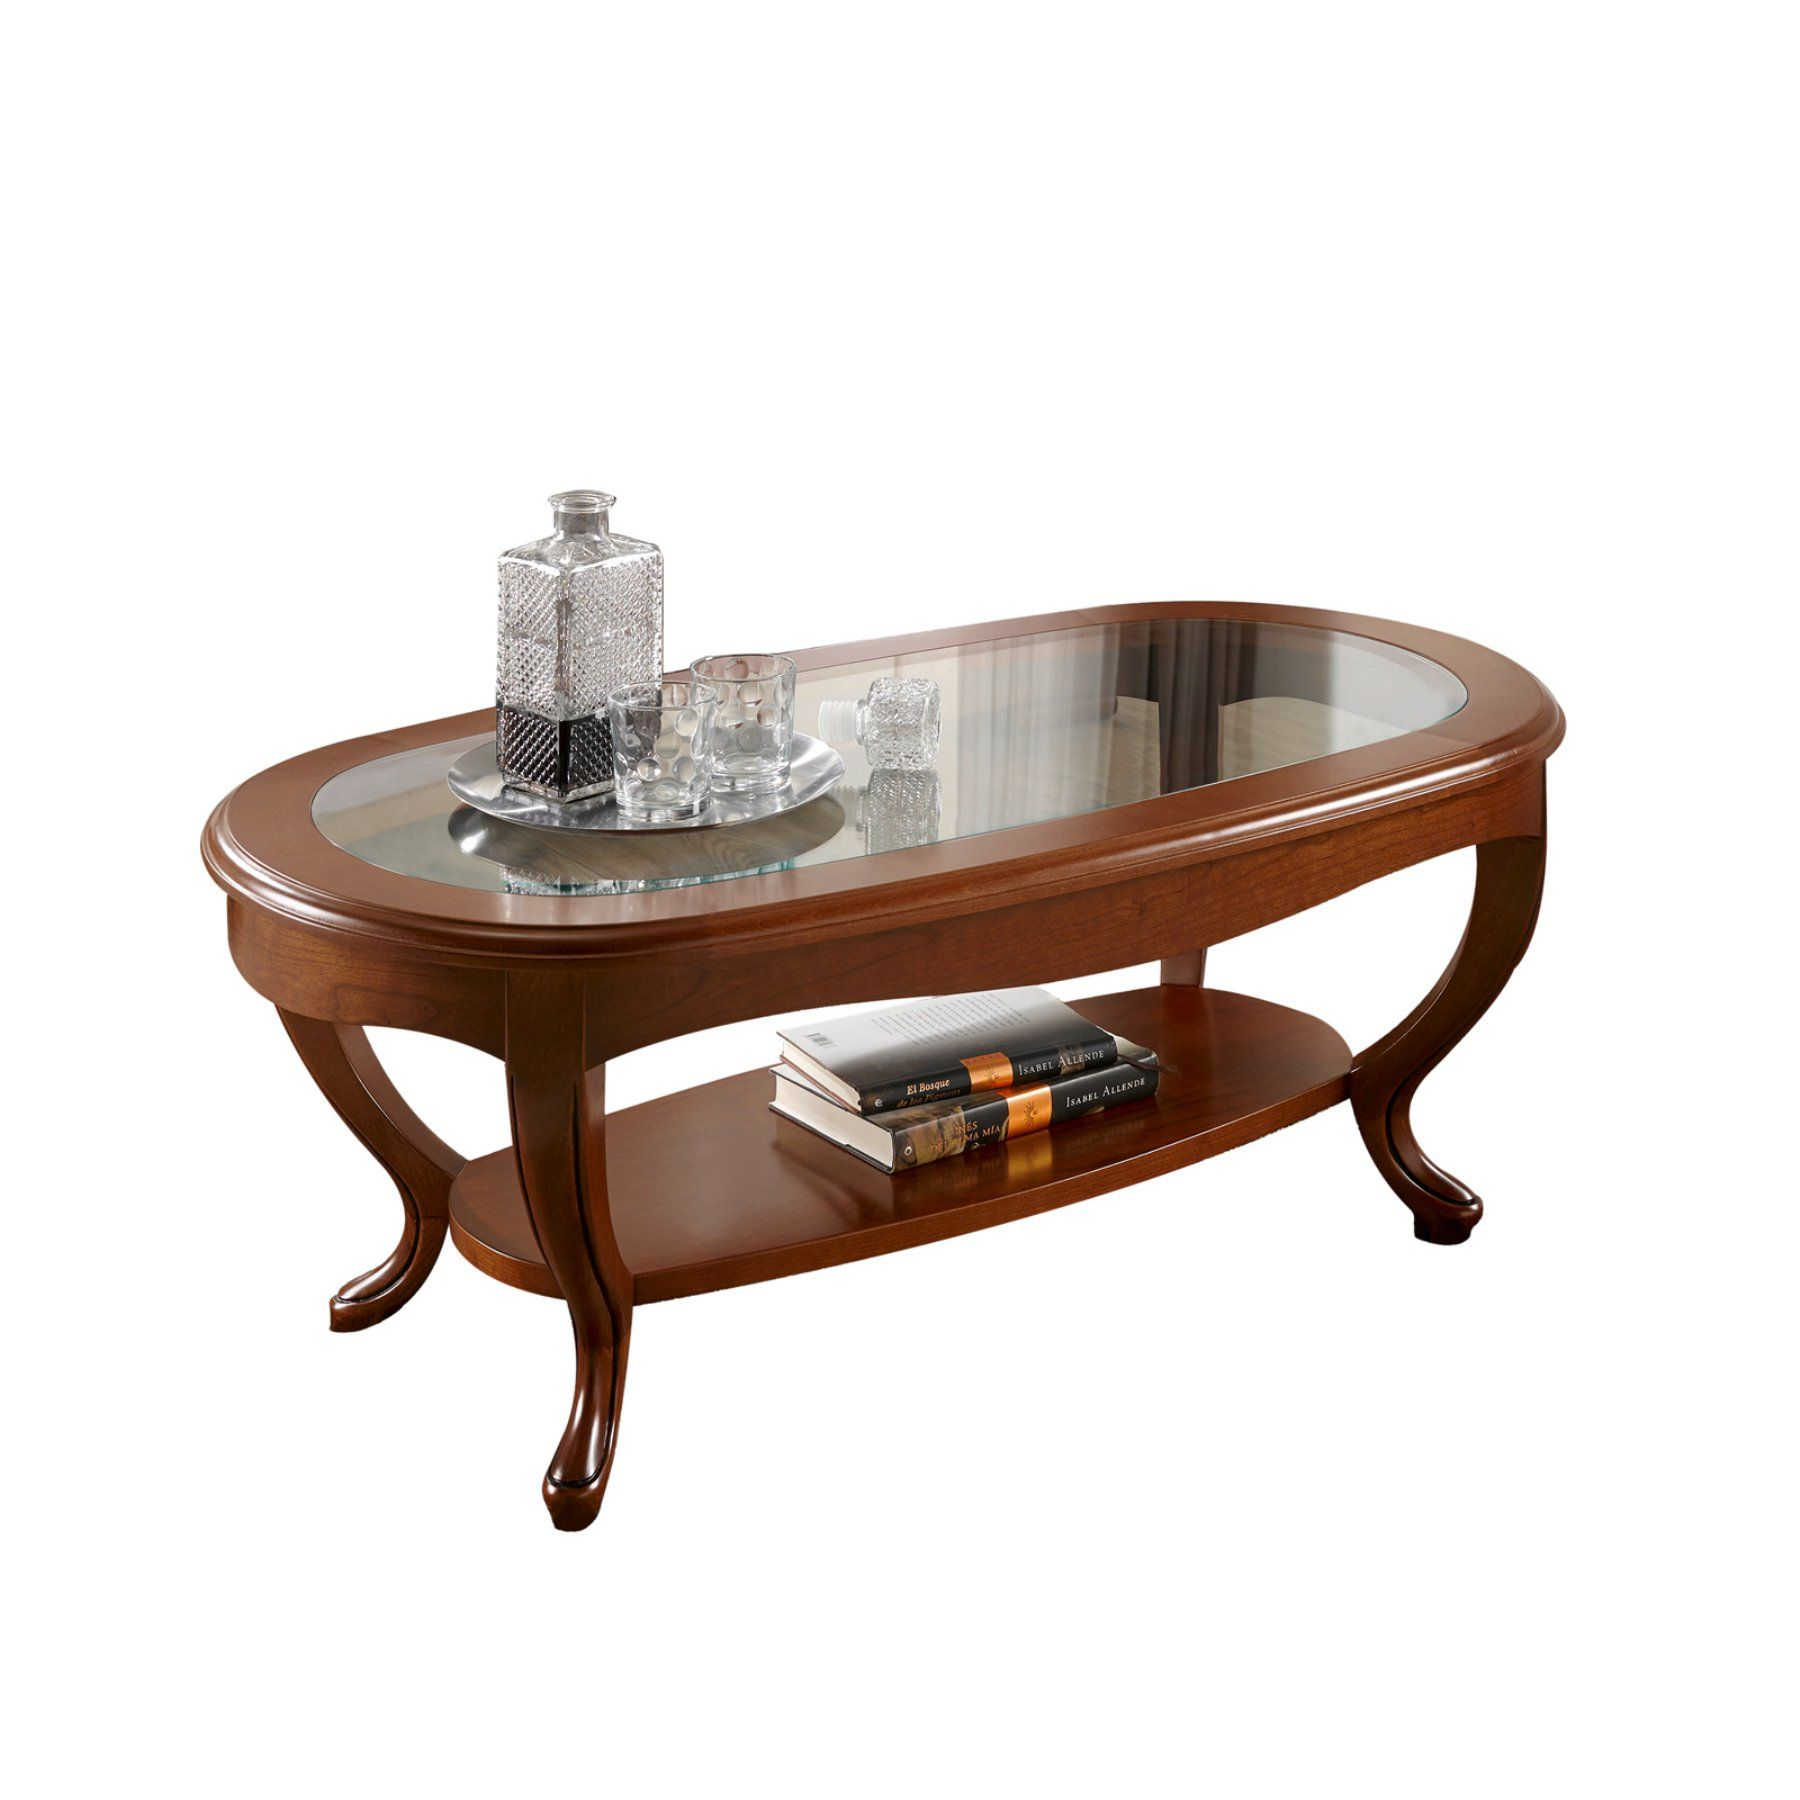 Panamar Golen Glass Top Coffee Table Coffee table, Glass